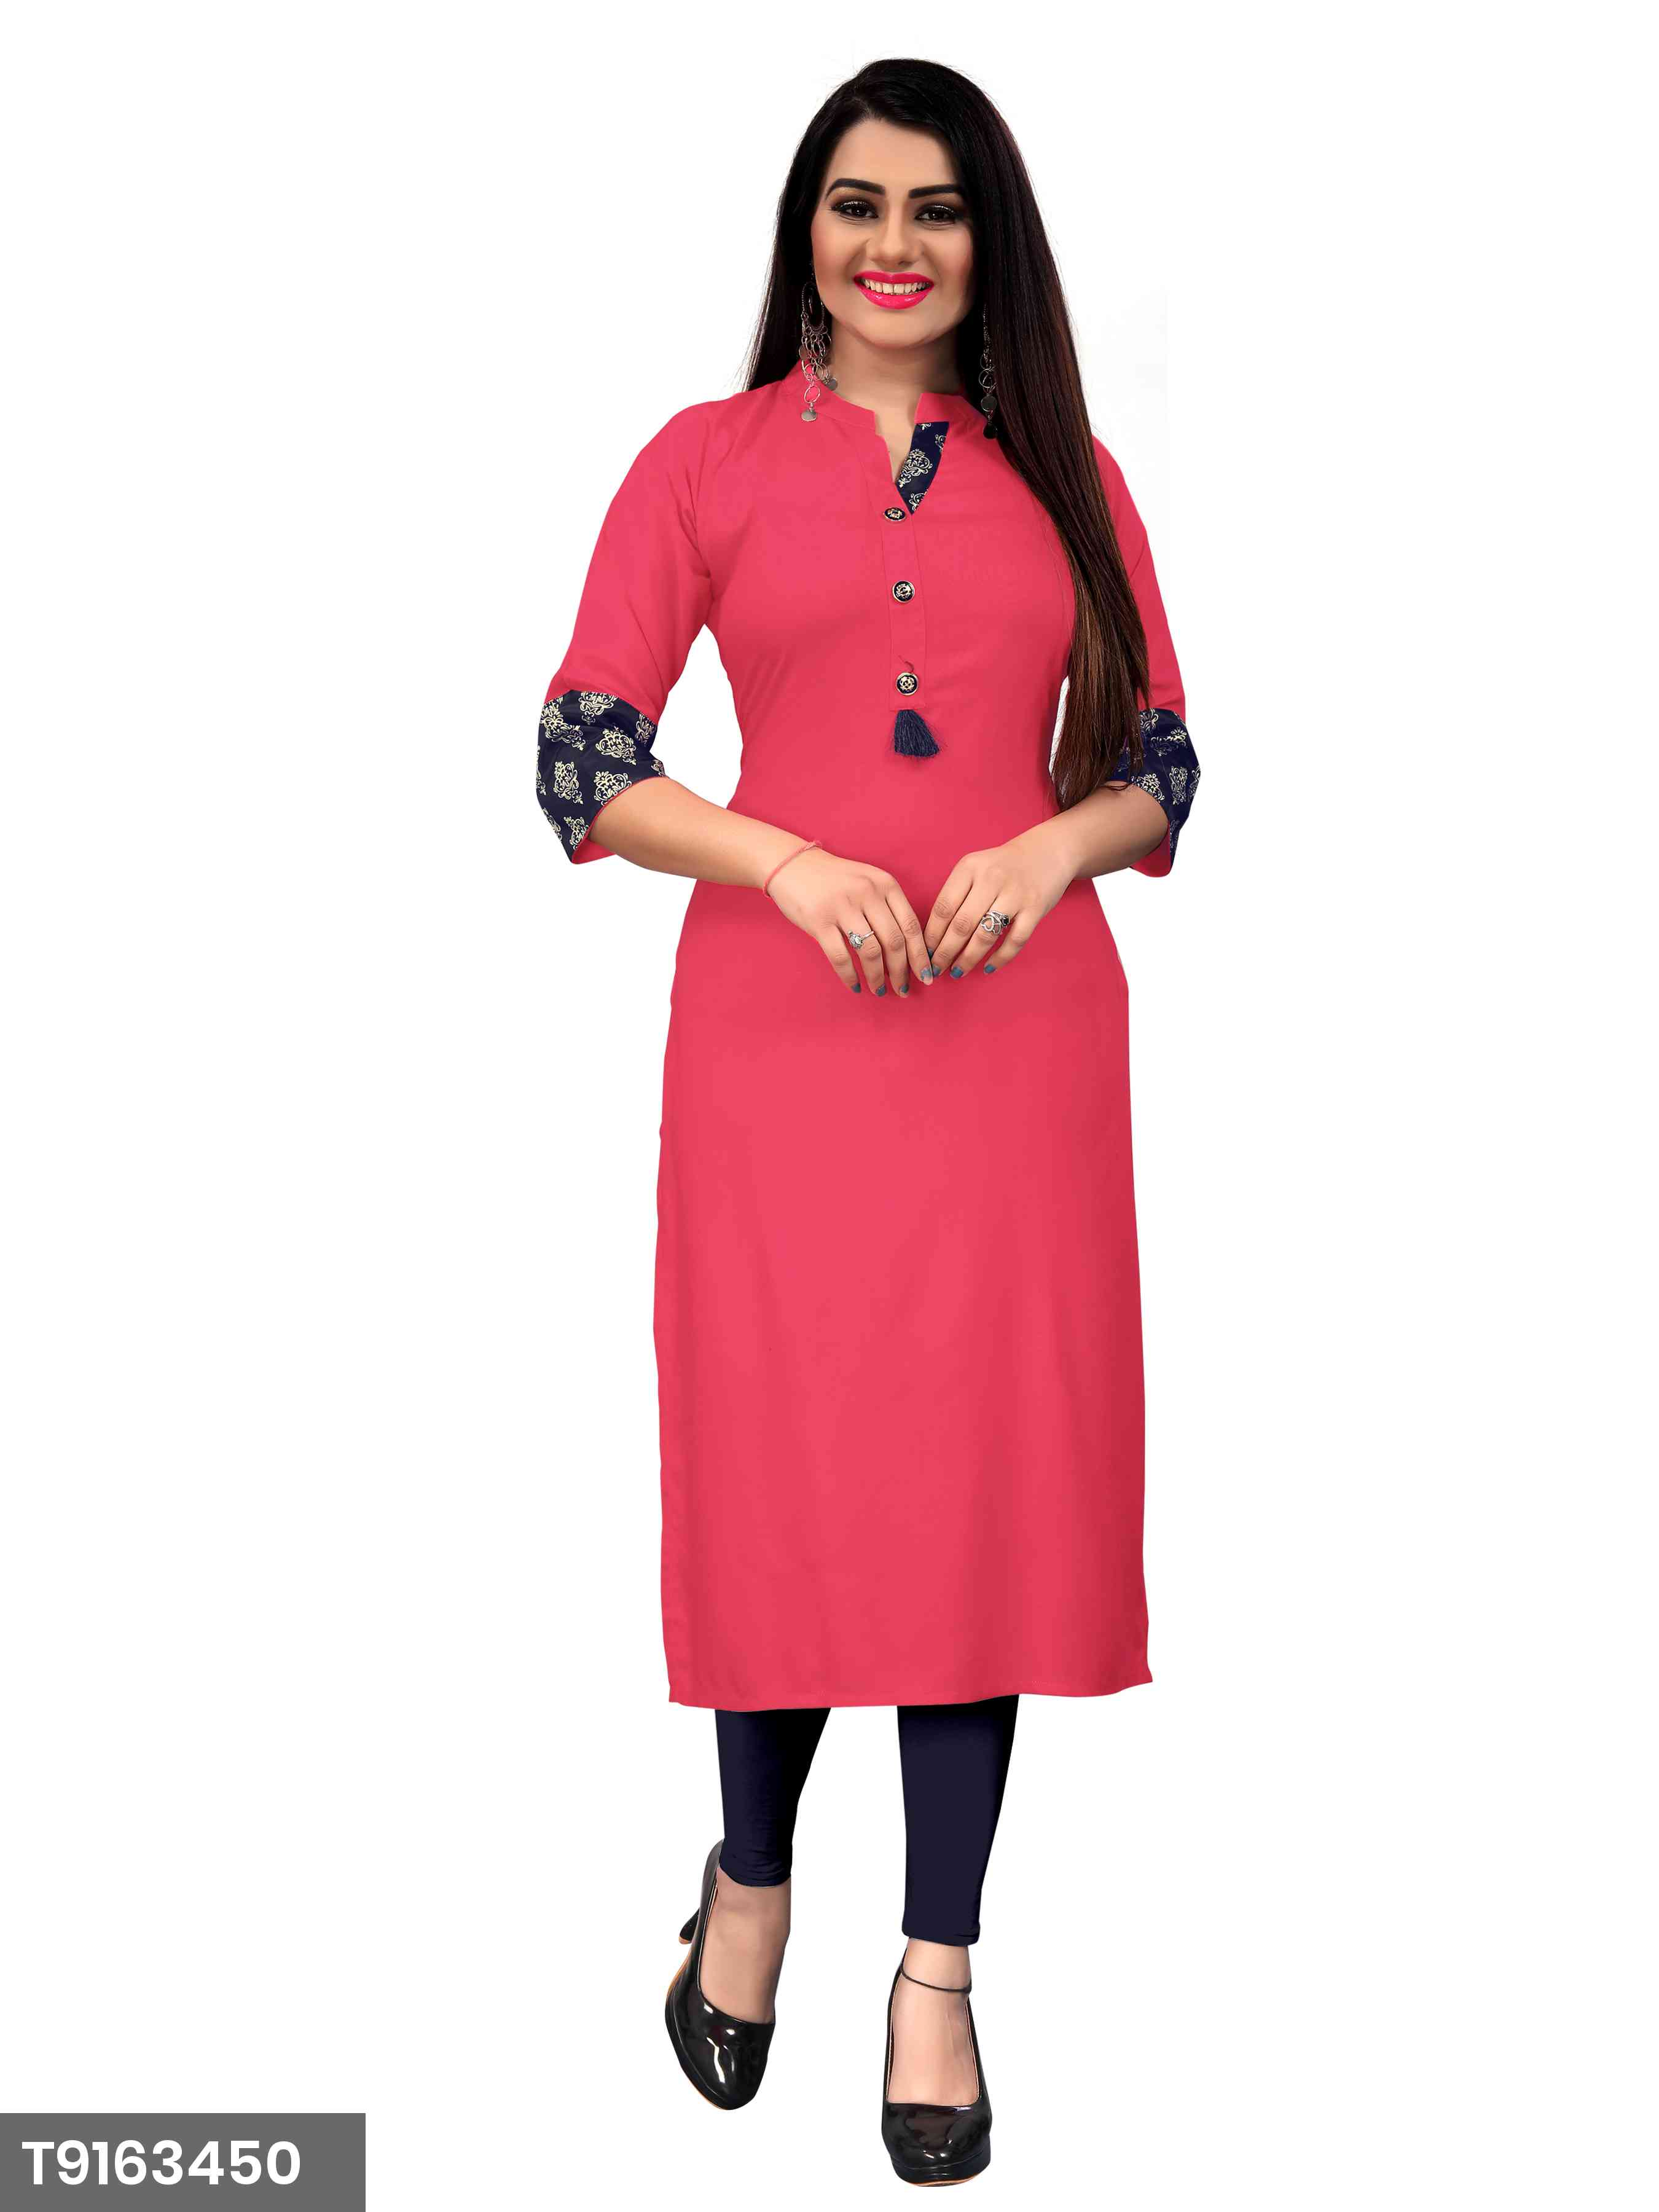 New Plain Pink Color Rayon Kurti For Women's